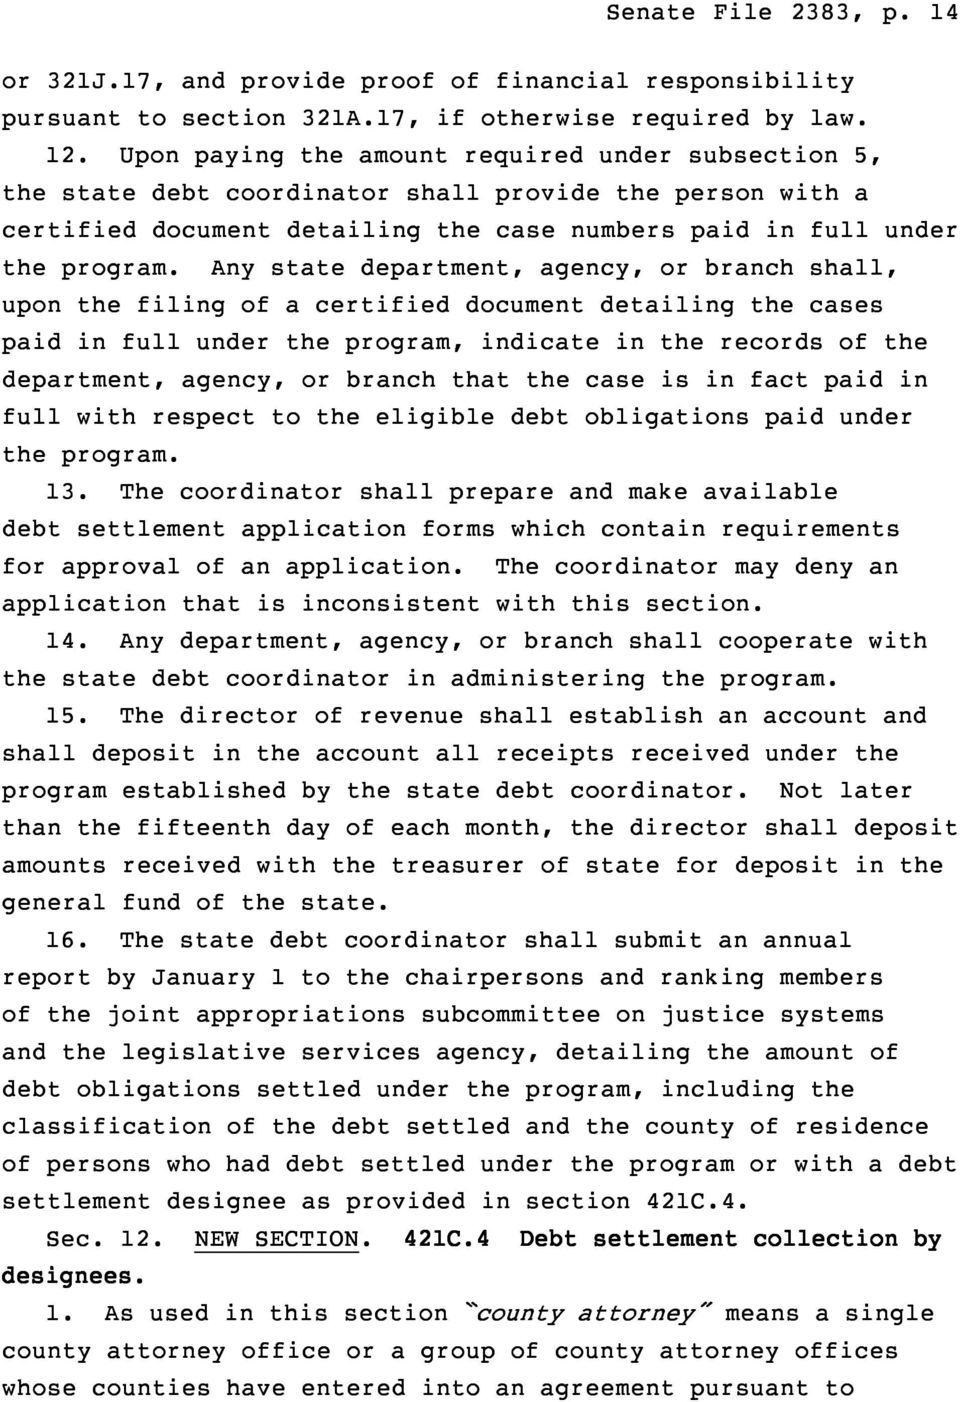 Any state department, agency, or branch shall, upon the filing of a certified document detailing the cases paid in full under the program, indicate in the records of the department, agency, or branch